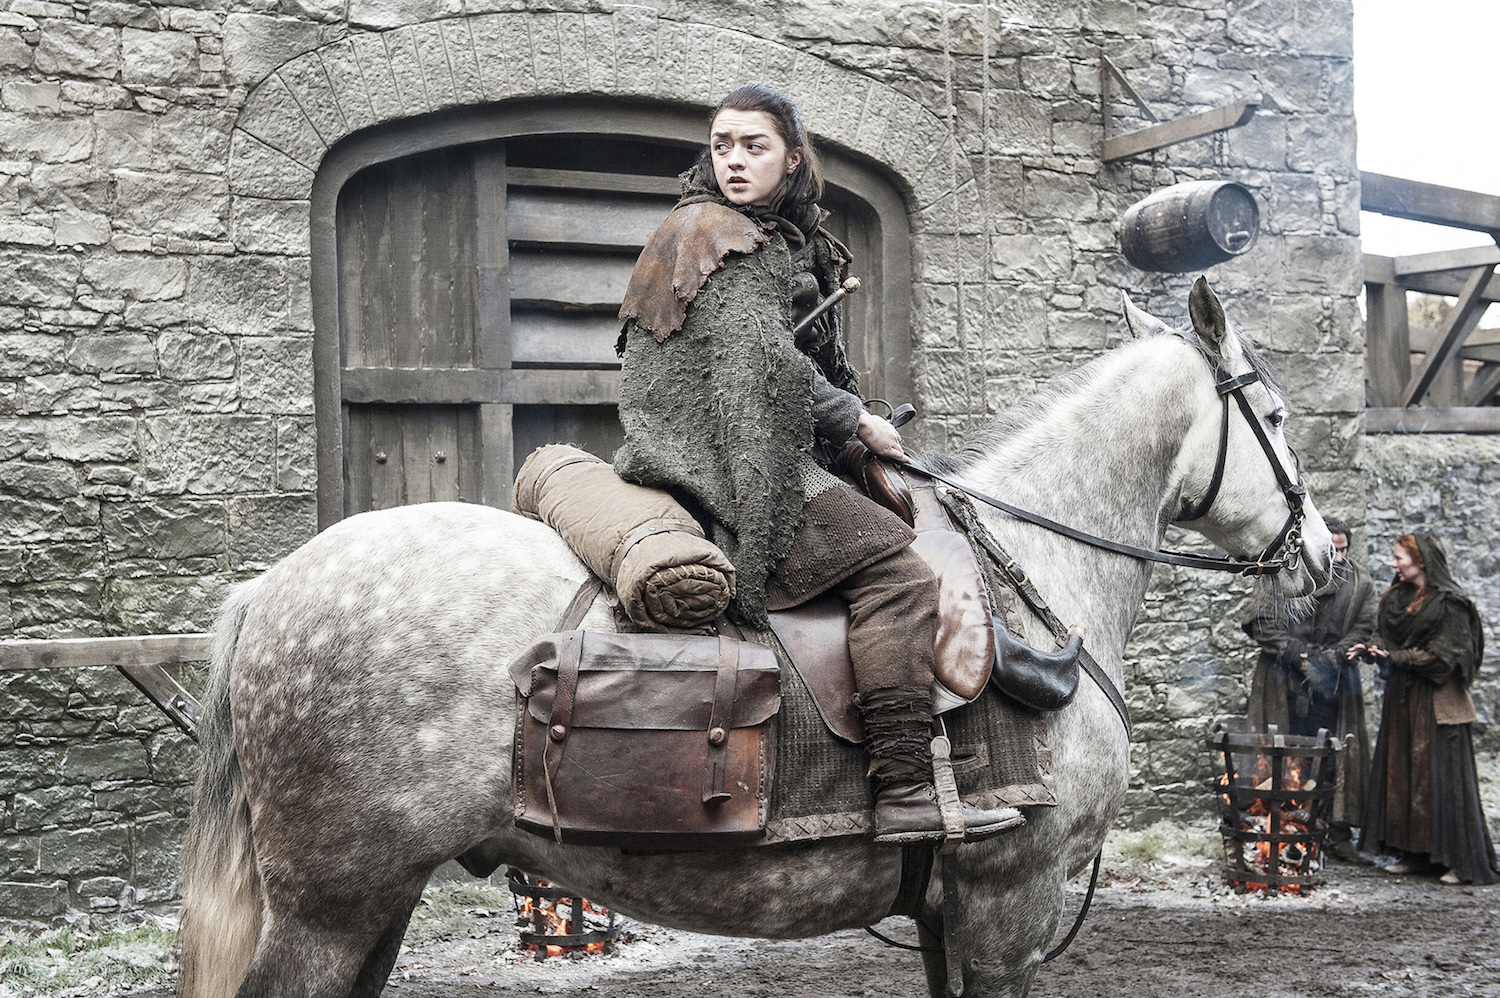 game-of-thrones-season-7-stormborn-image-social